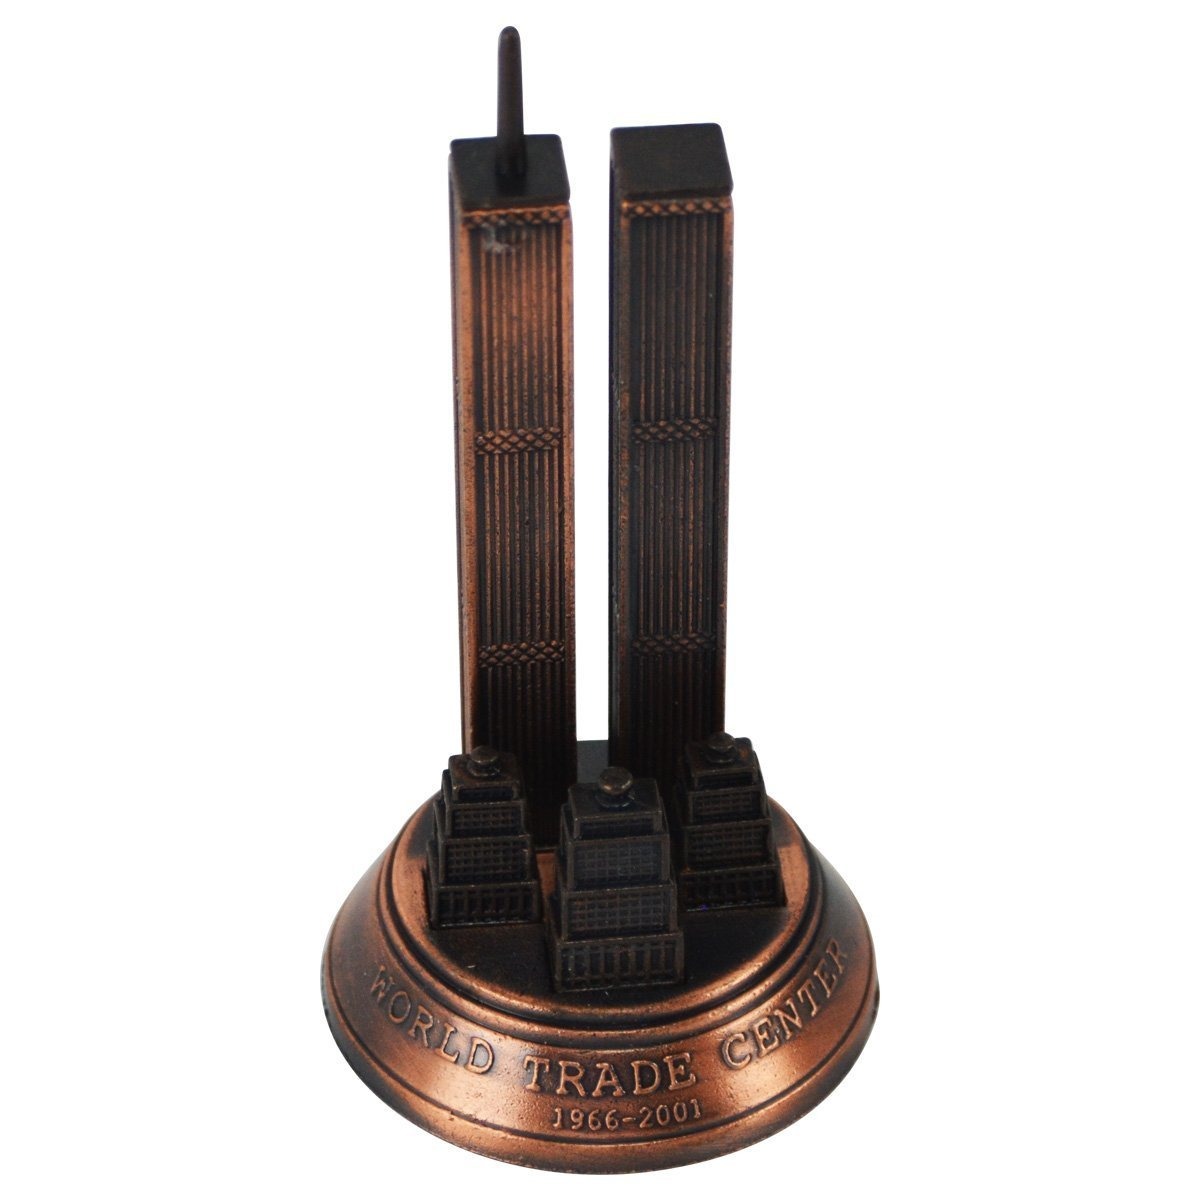 Bronze Metal World Trade Center 9/11 WTC Model Replica Die Cast Pencil Sharpener TreasureGurus LLC